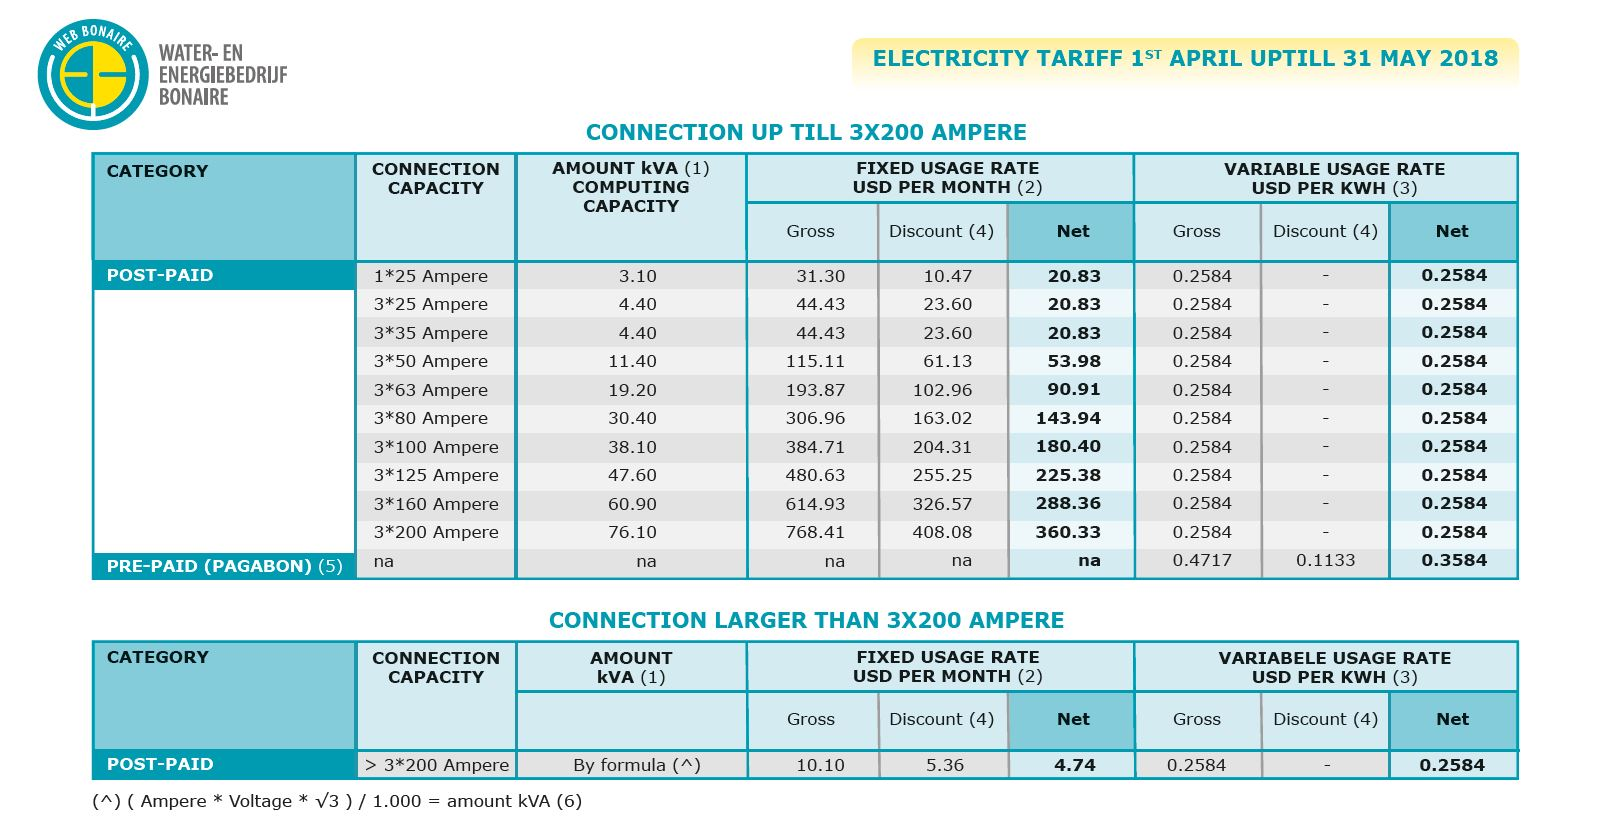 WEB tariff Electricity May 2018